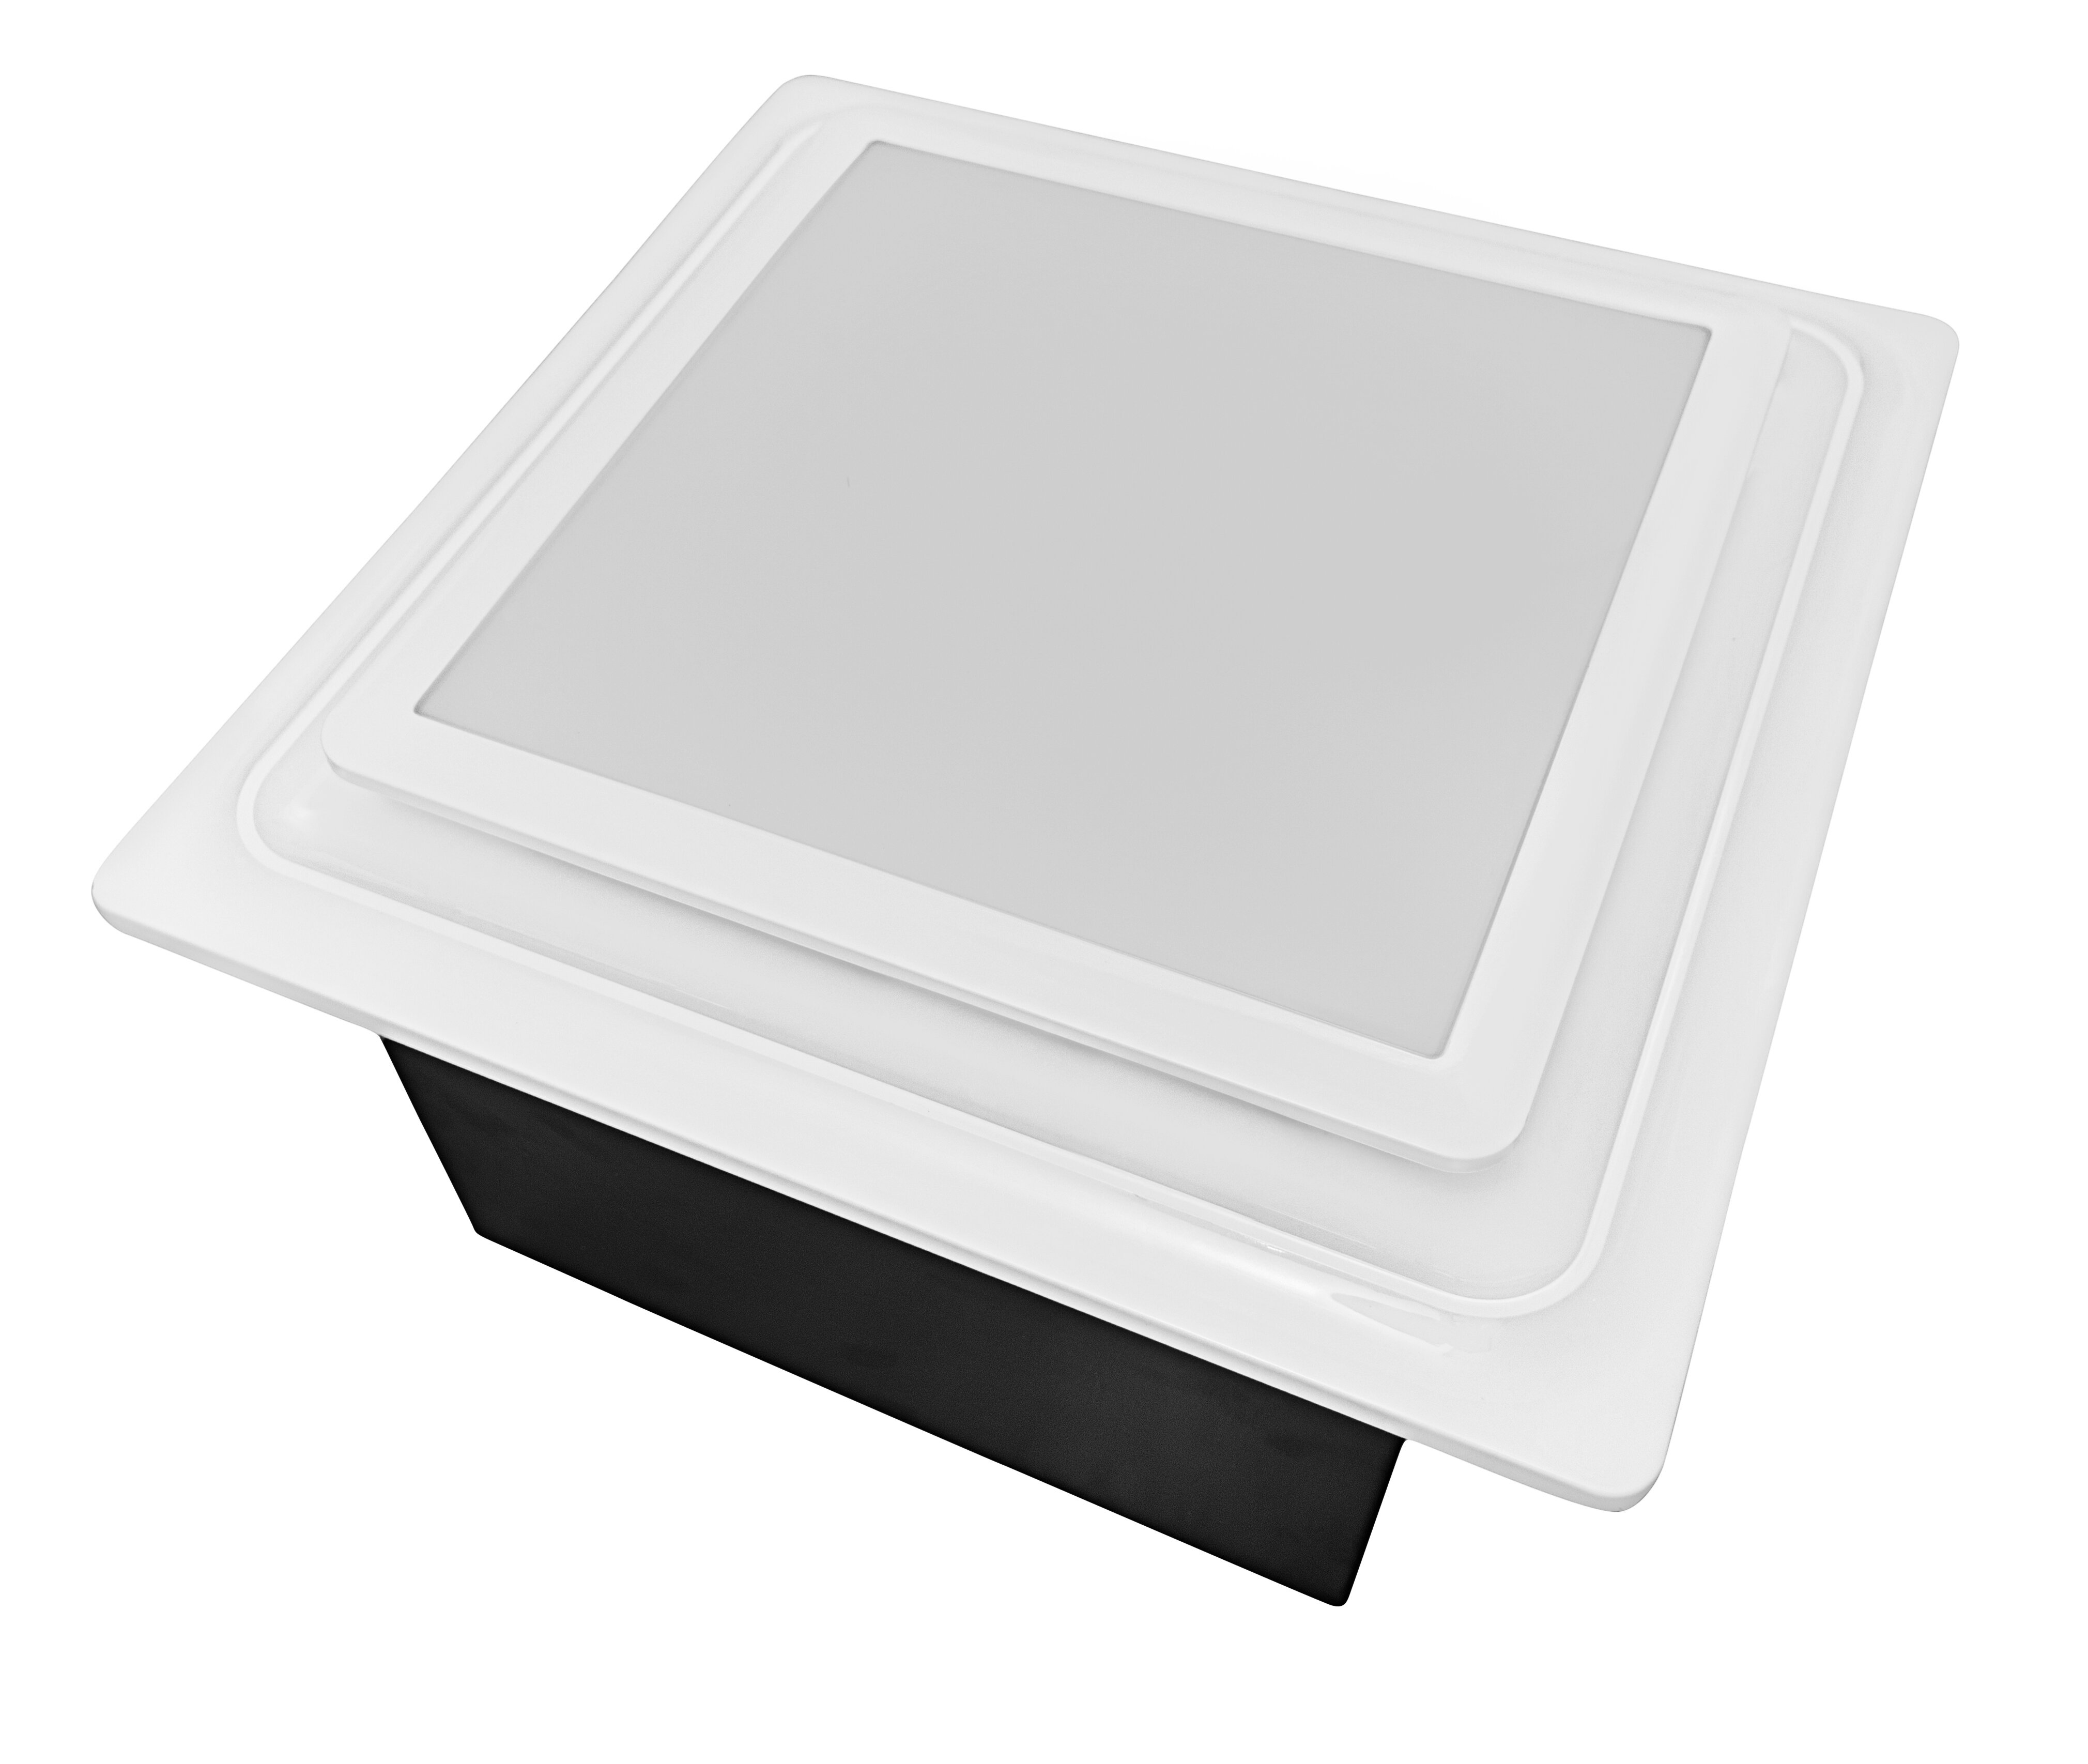 ABF110DH L5 W 110 CFM Energy Star Bathroom Fan With Light And Humidity  Sensor